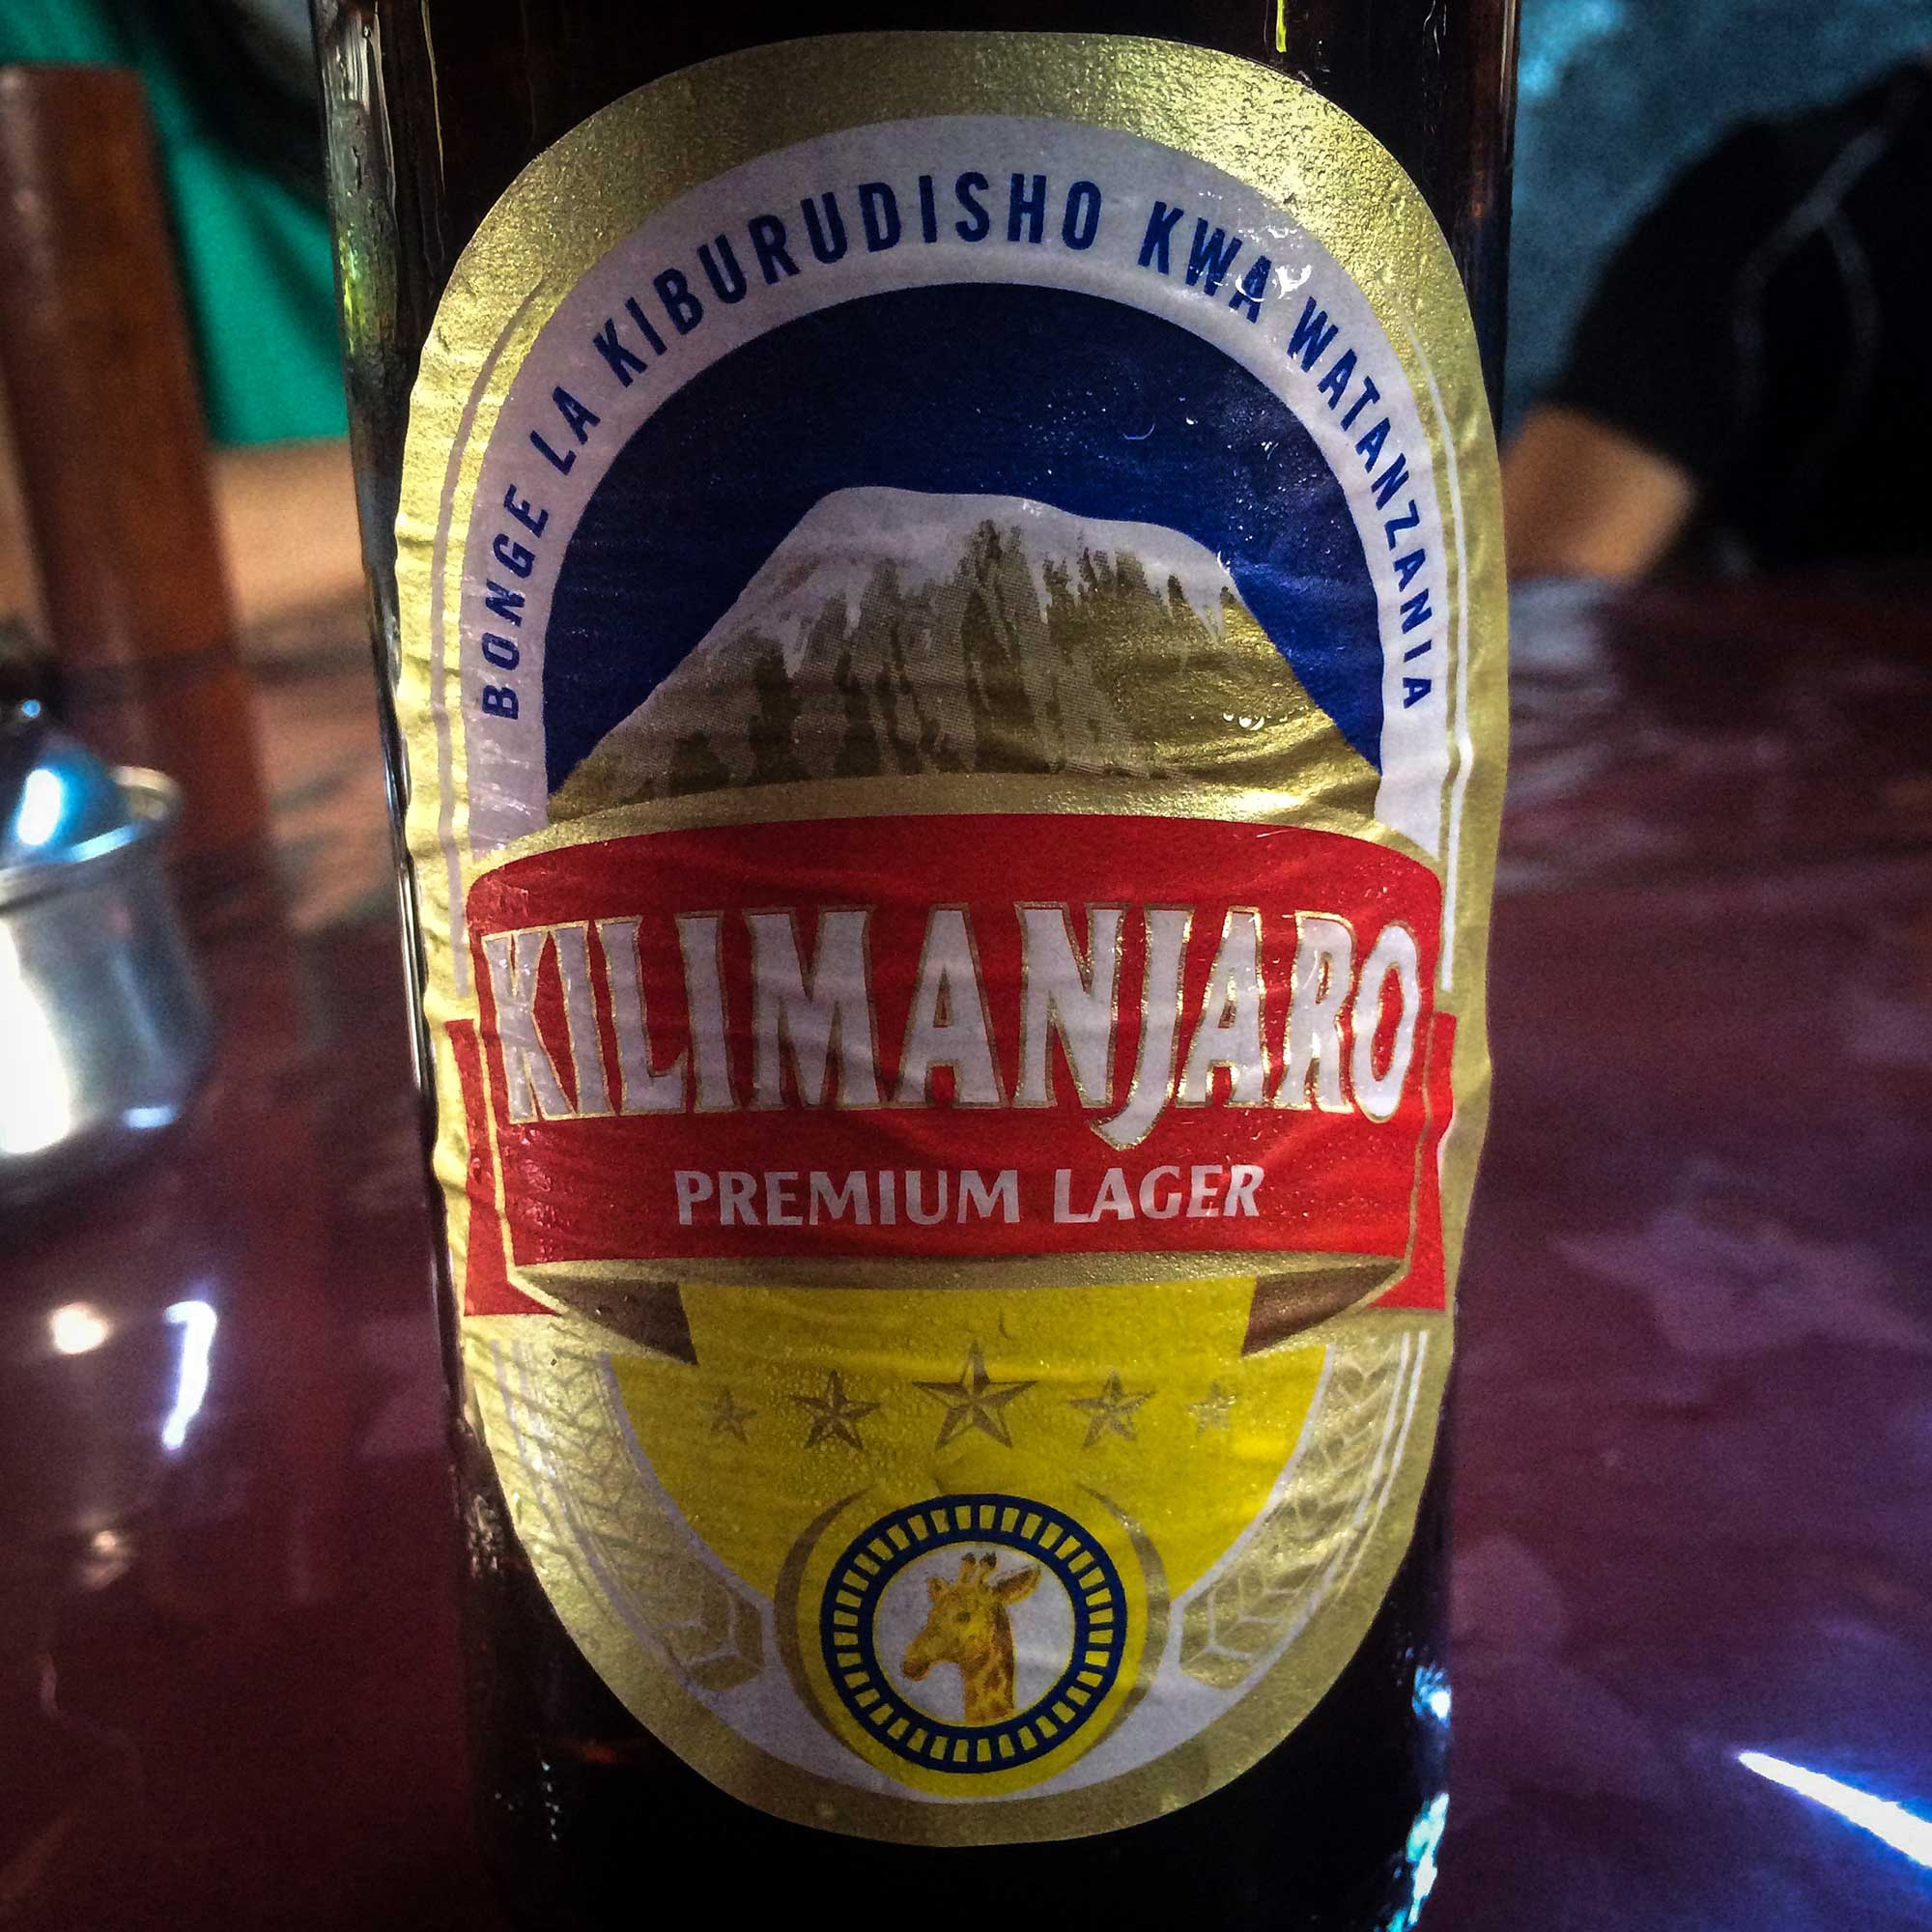 A good way to rinse away the exhaustion from climbing Kilimanjaro is simply to drink Kilimanjaro.